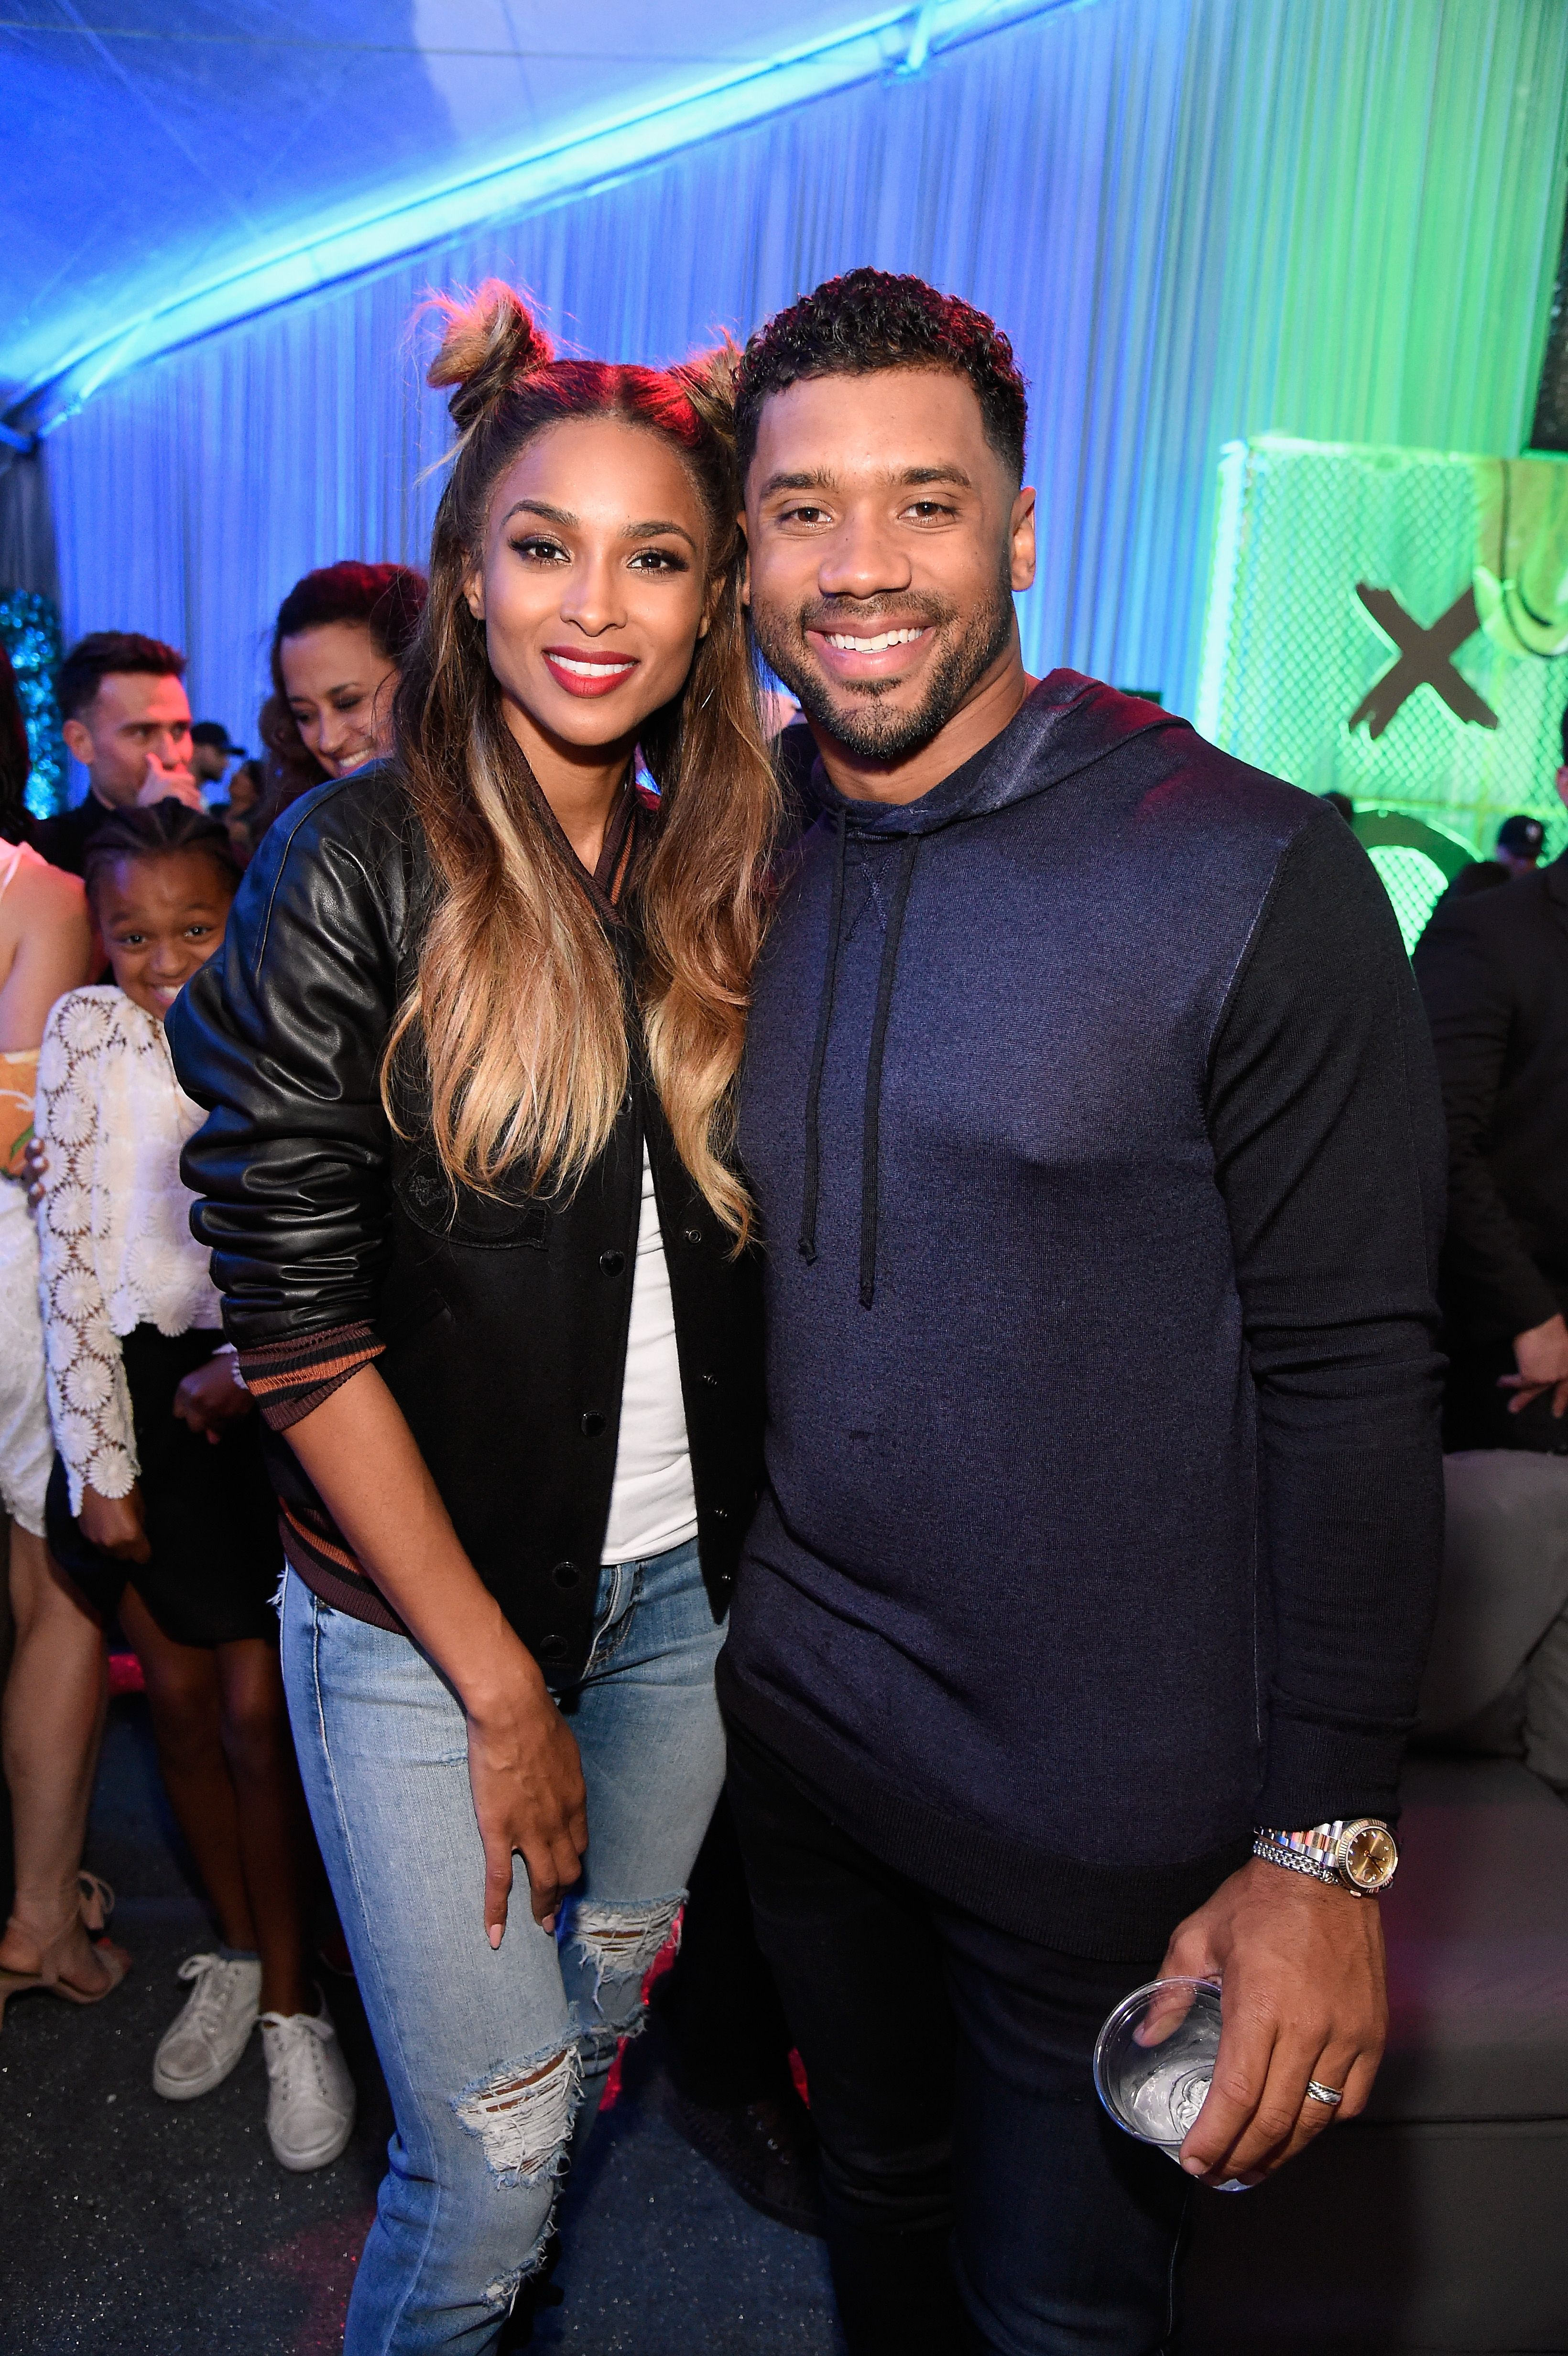 Ciara and football player Russell Wilson attend the Nickelodeon Kids' Choice Sports Awards in July 2016 | Photo: Getty Images